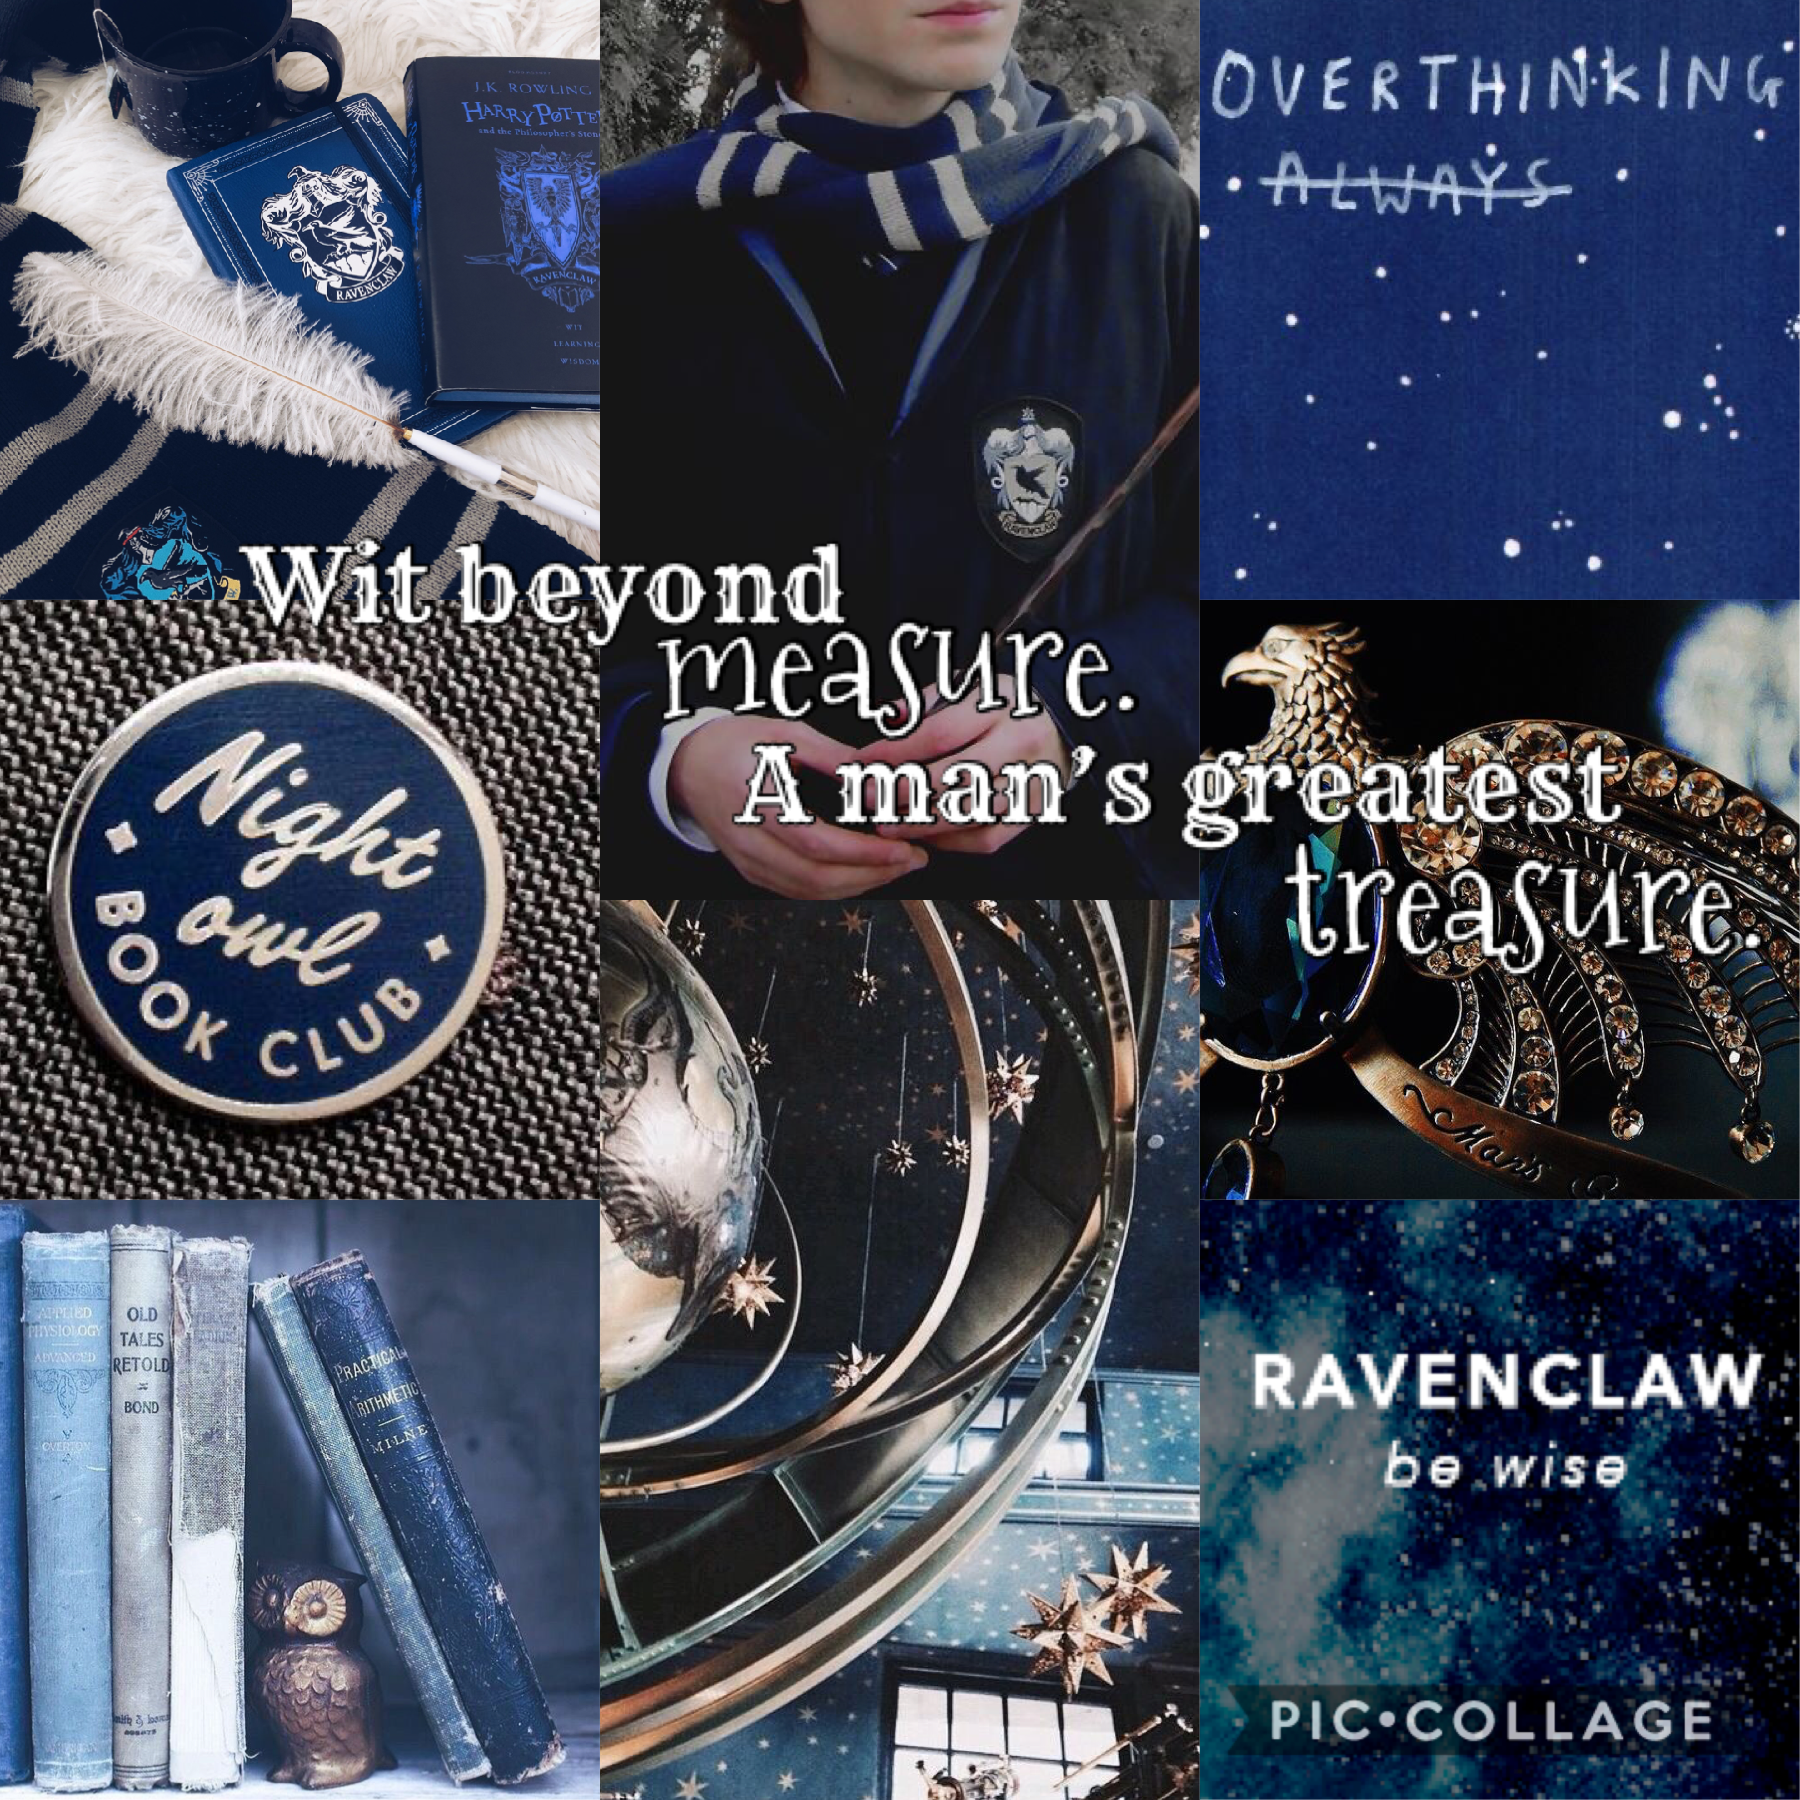 What's your Hogwarts House? I'm Ravenclaw 💙🤍